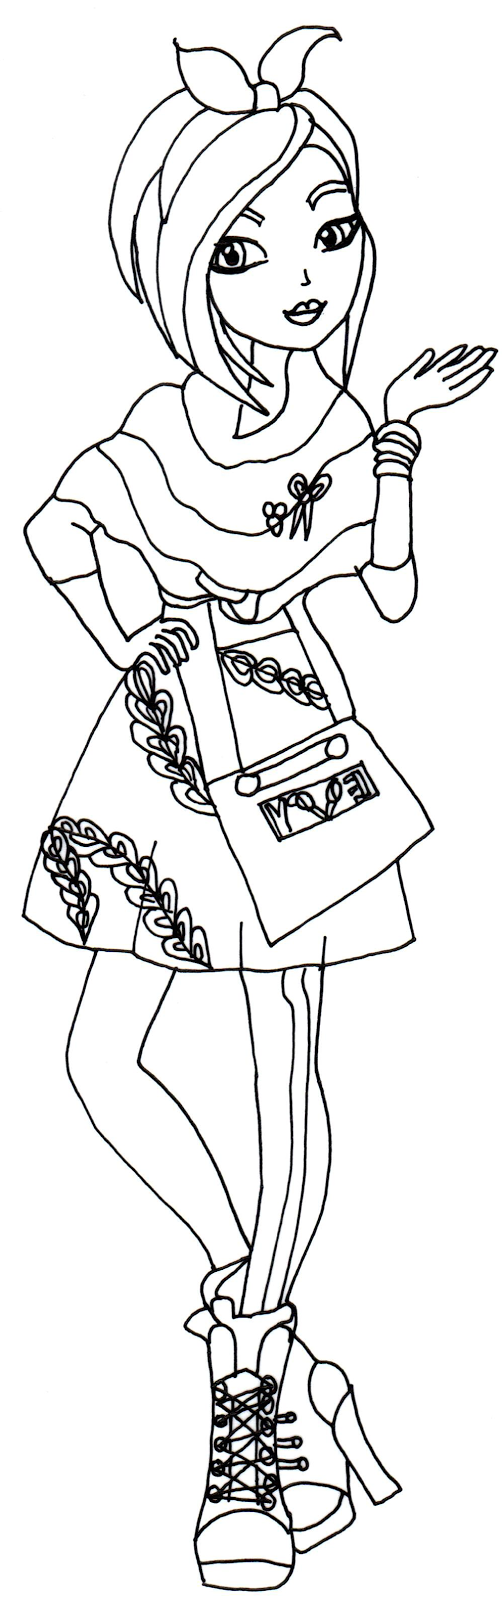 holly ohair coloring pages - photo#21